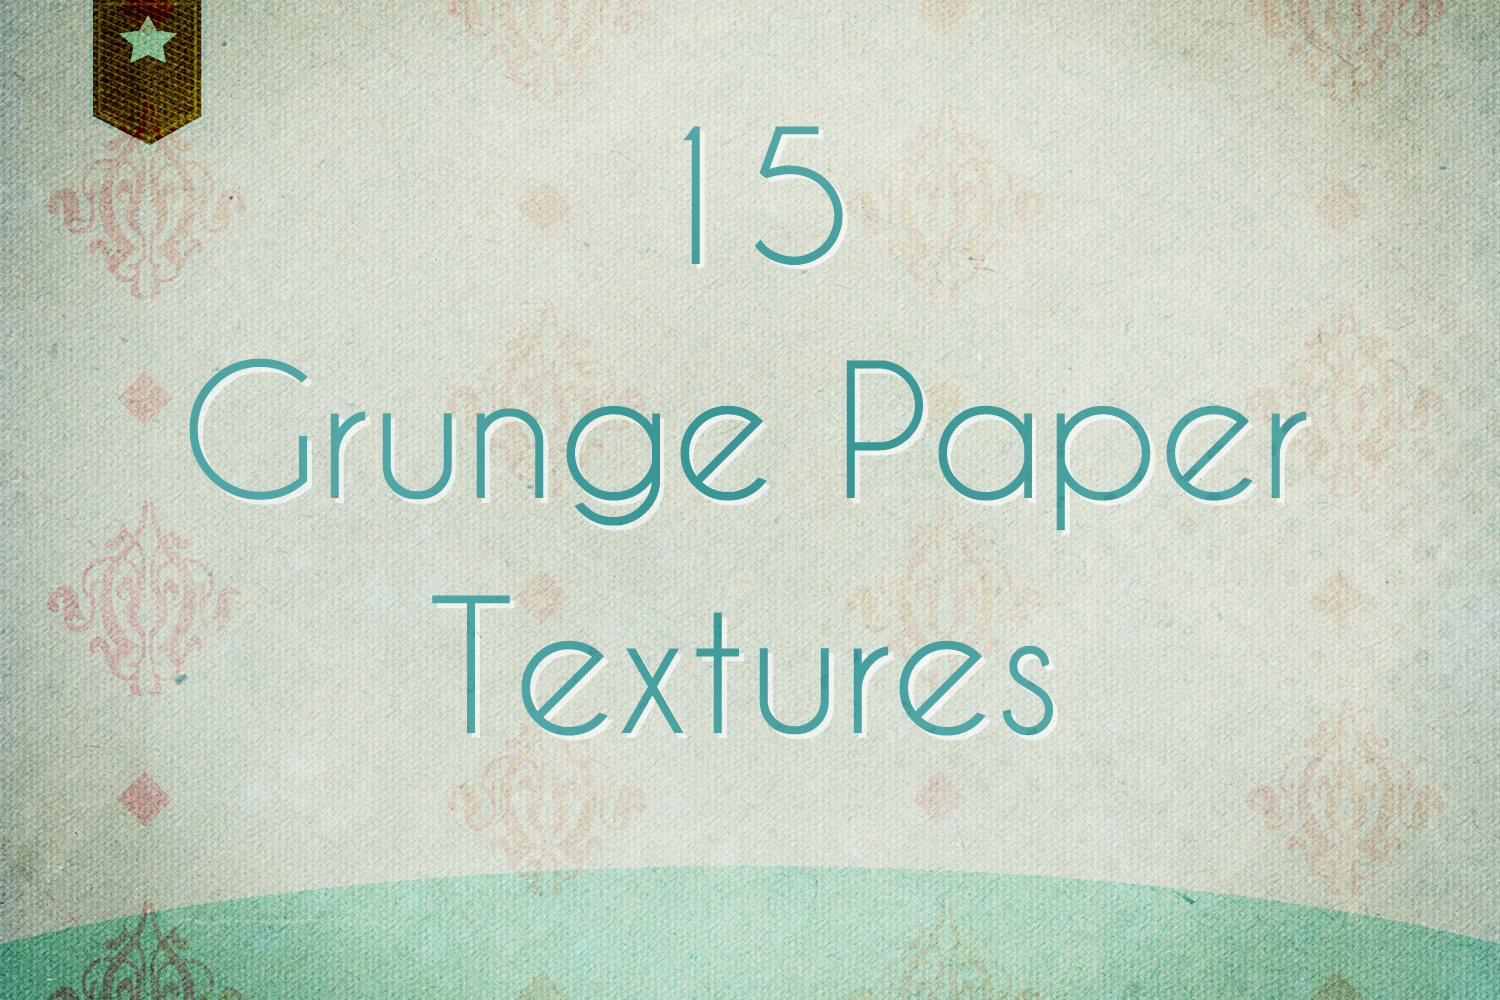 grunge papers texture pack example image 1